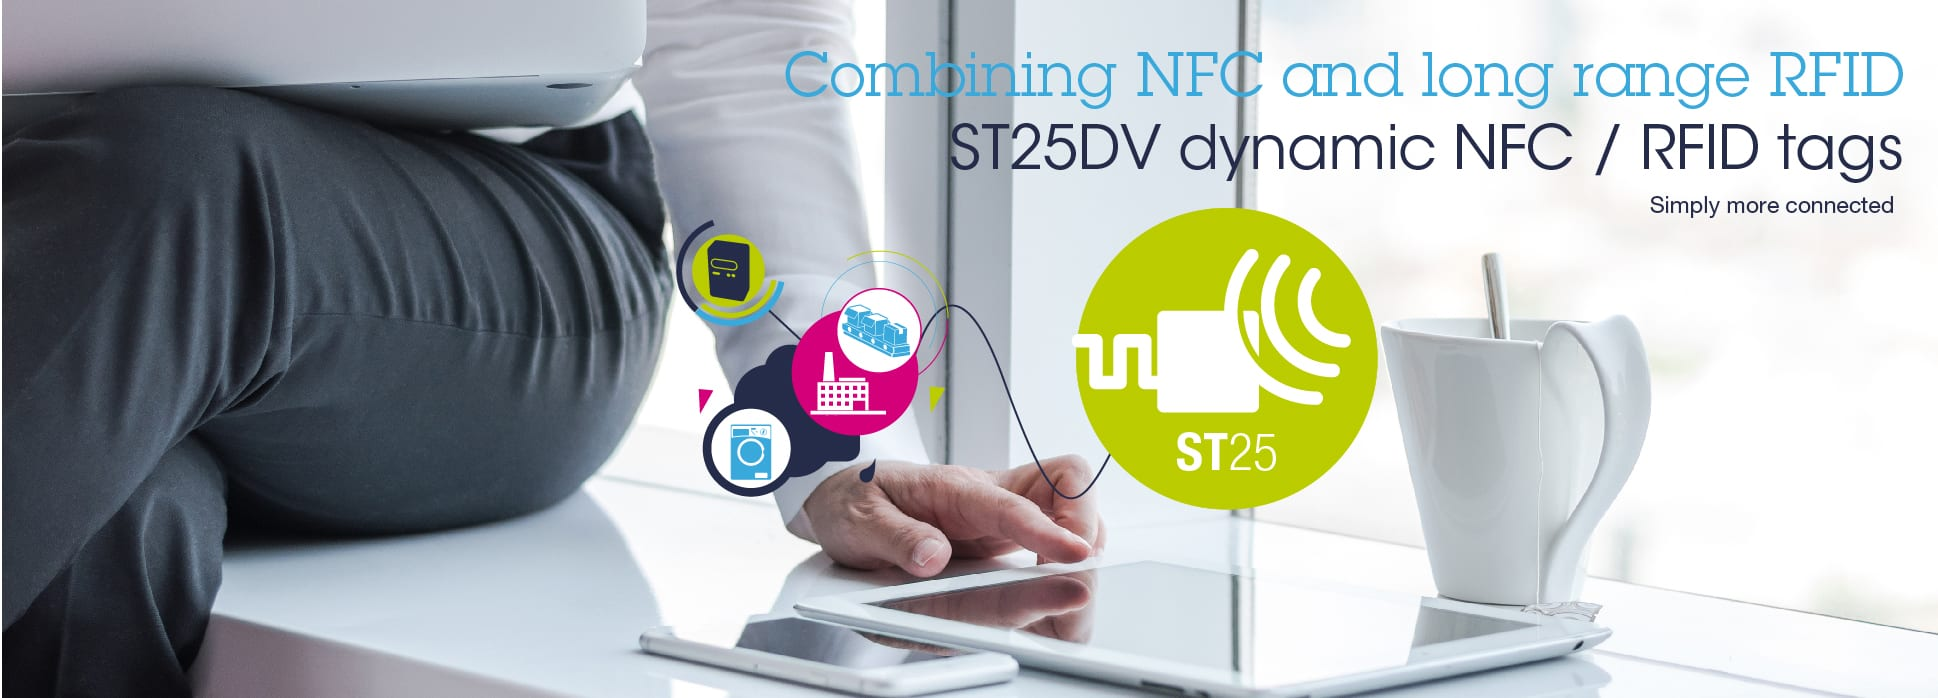 Nfc Tags St25dv Dual Interface Nfc Tags